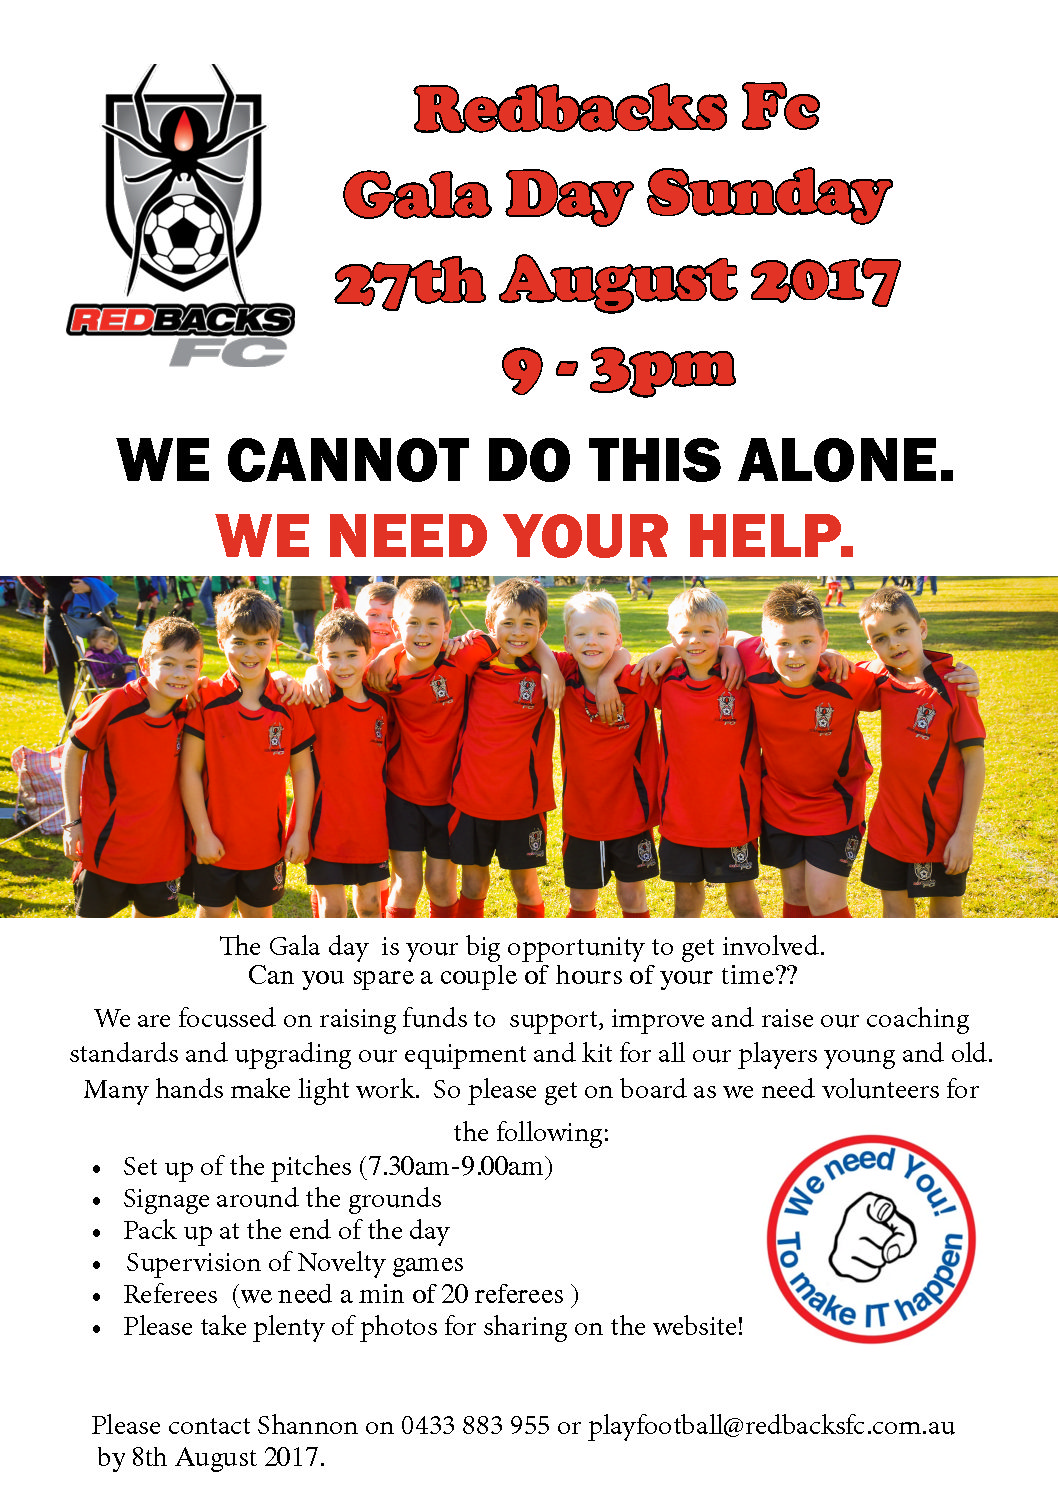 We Need You! Redbacks FC Fundraiser Gala Day